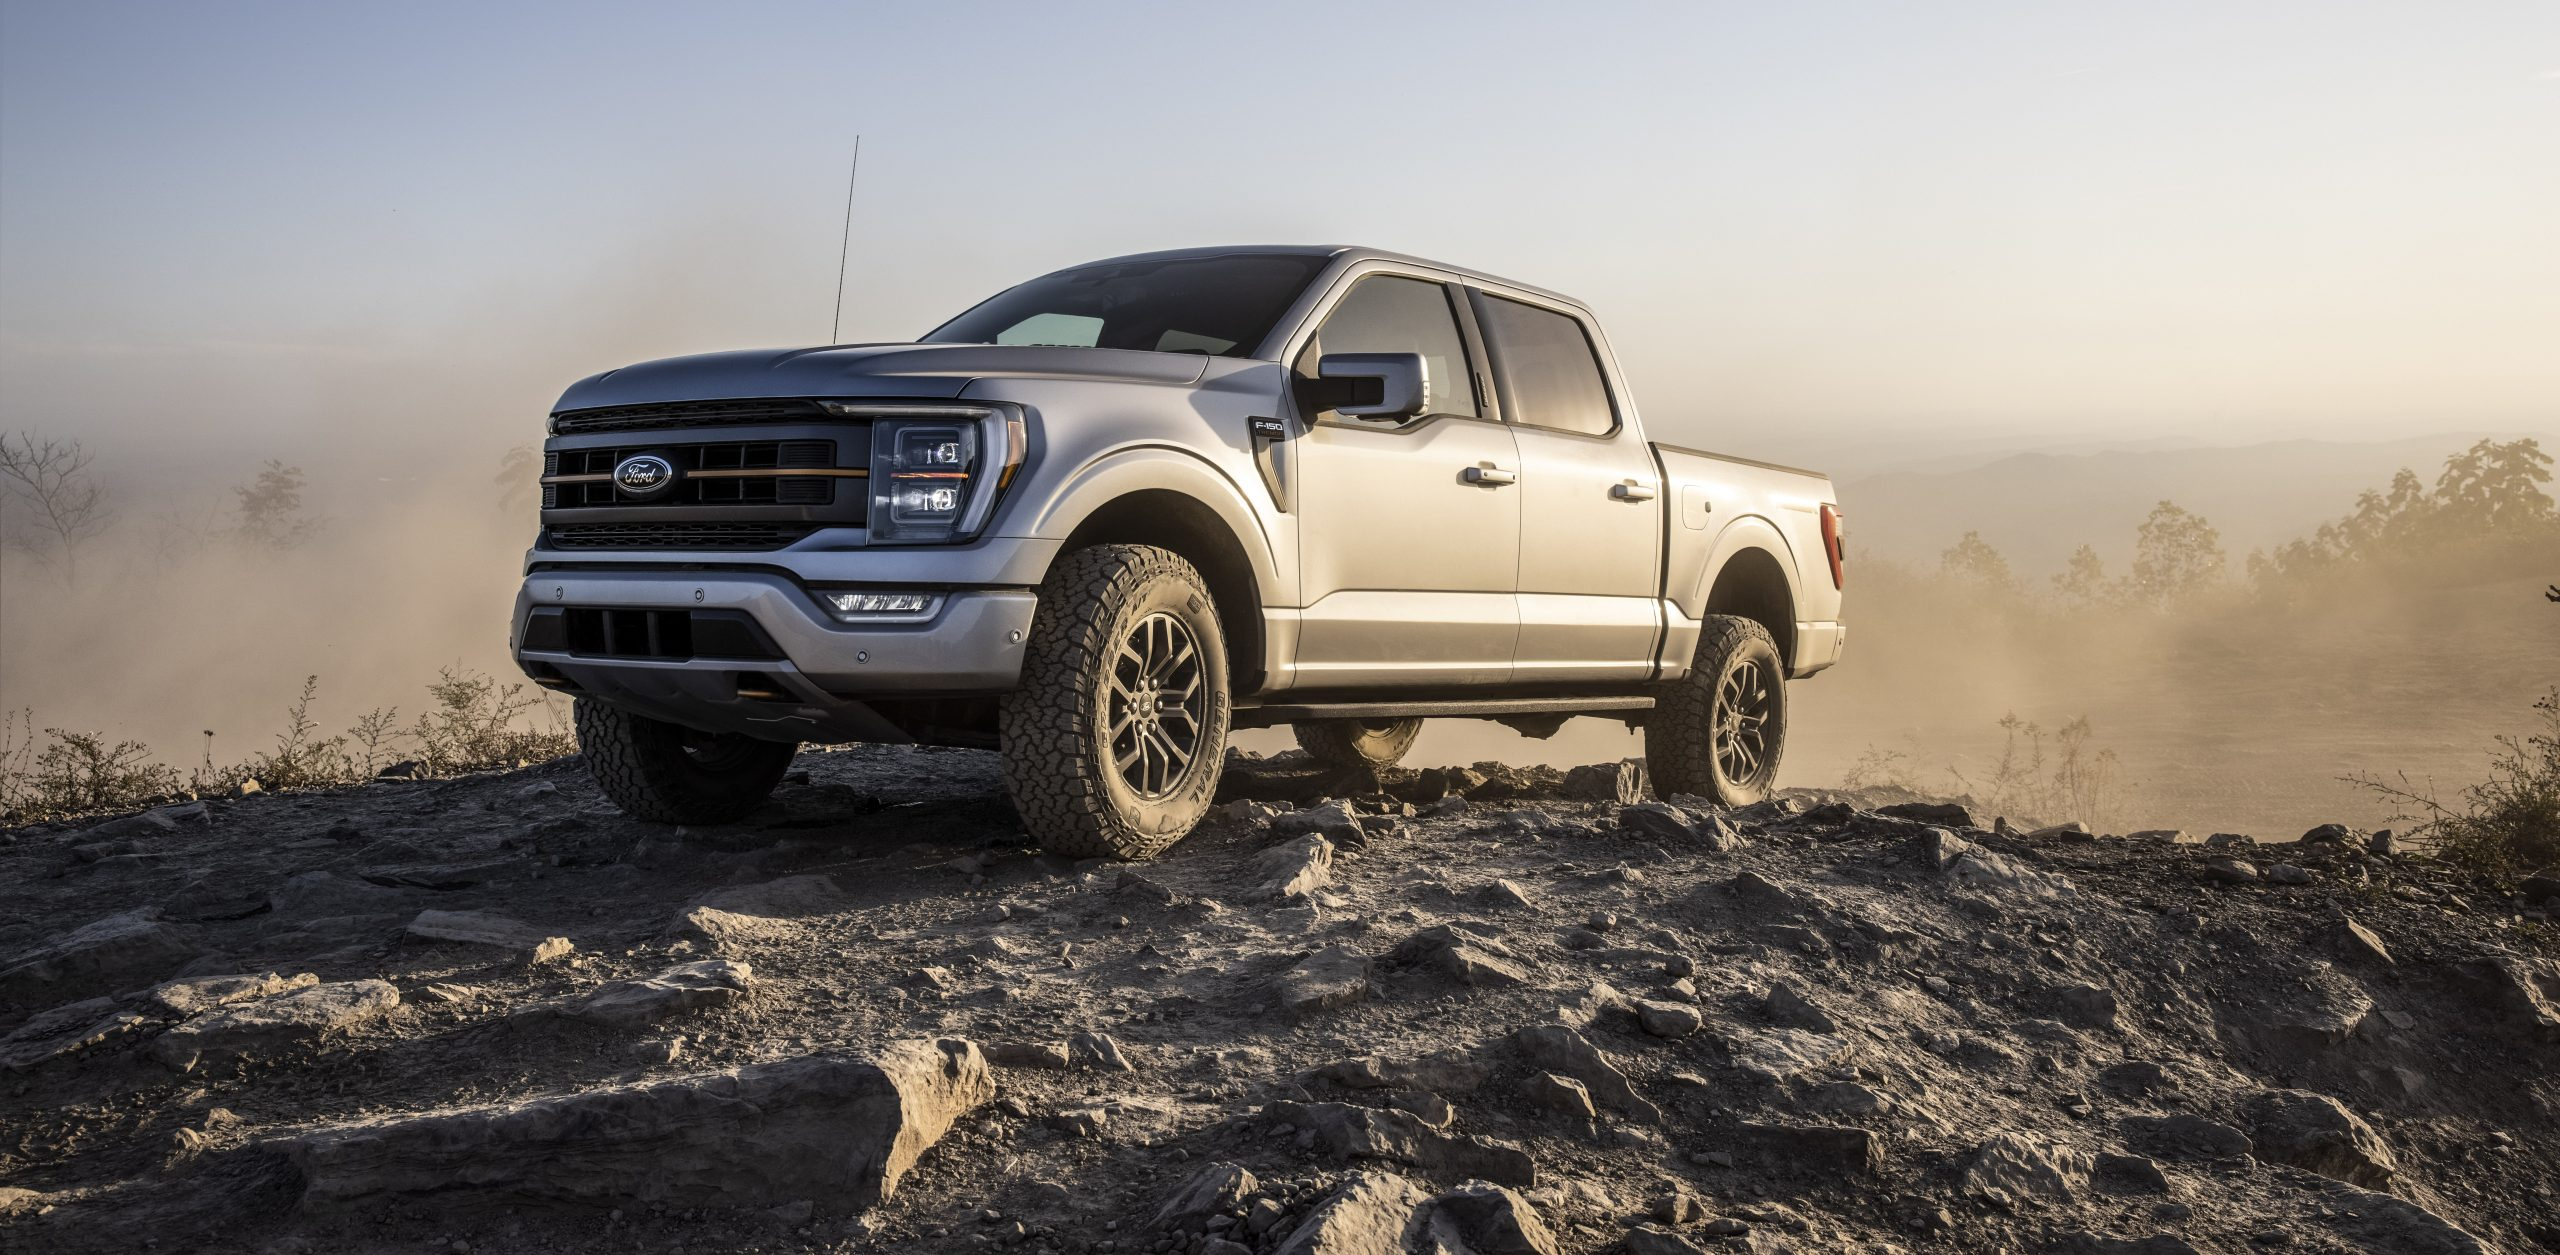 FORD EXPANDS OFF-ROAD FAMILY OF TRUCKS WITH ALL-NEW 2021 F-150 TREMOR – A RUGGED 4X4 FOR WORK AND RECREATION